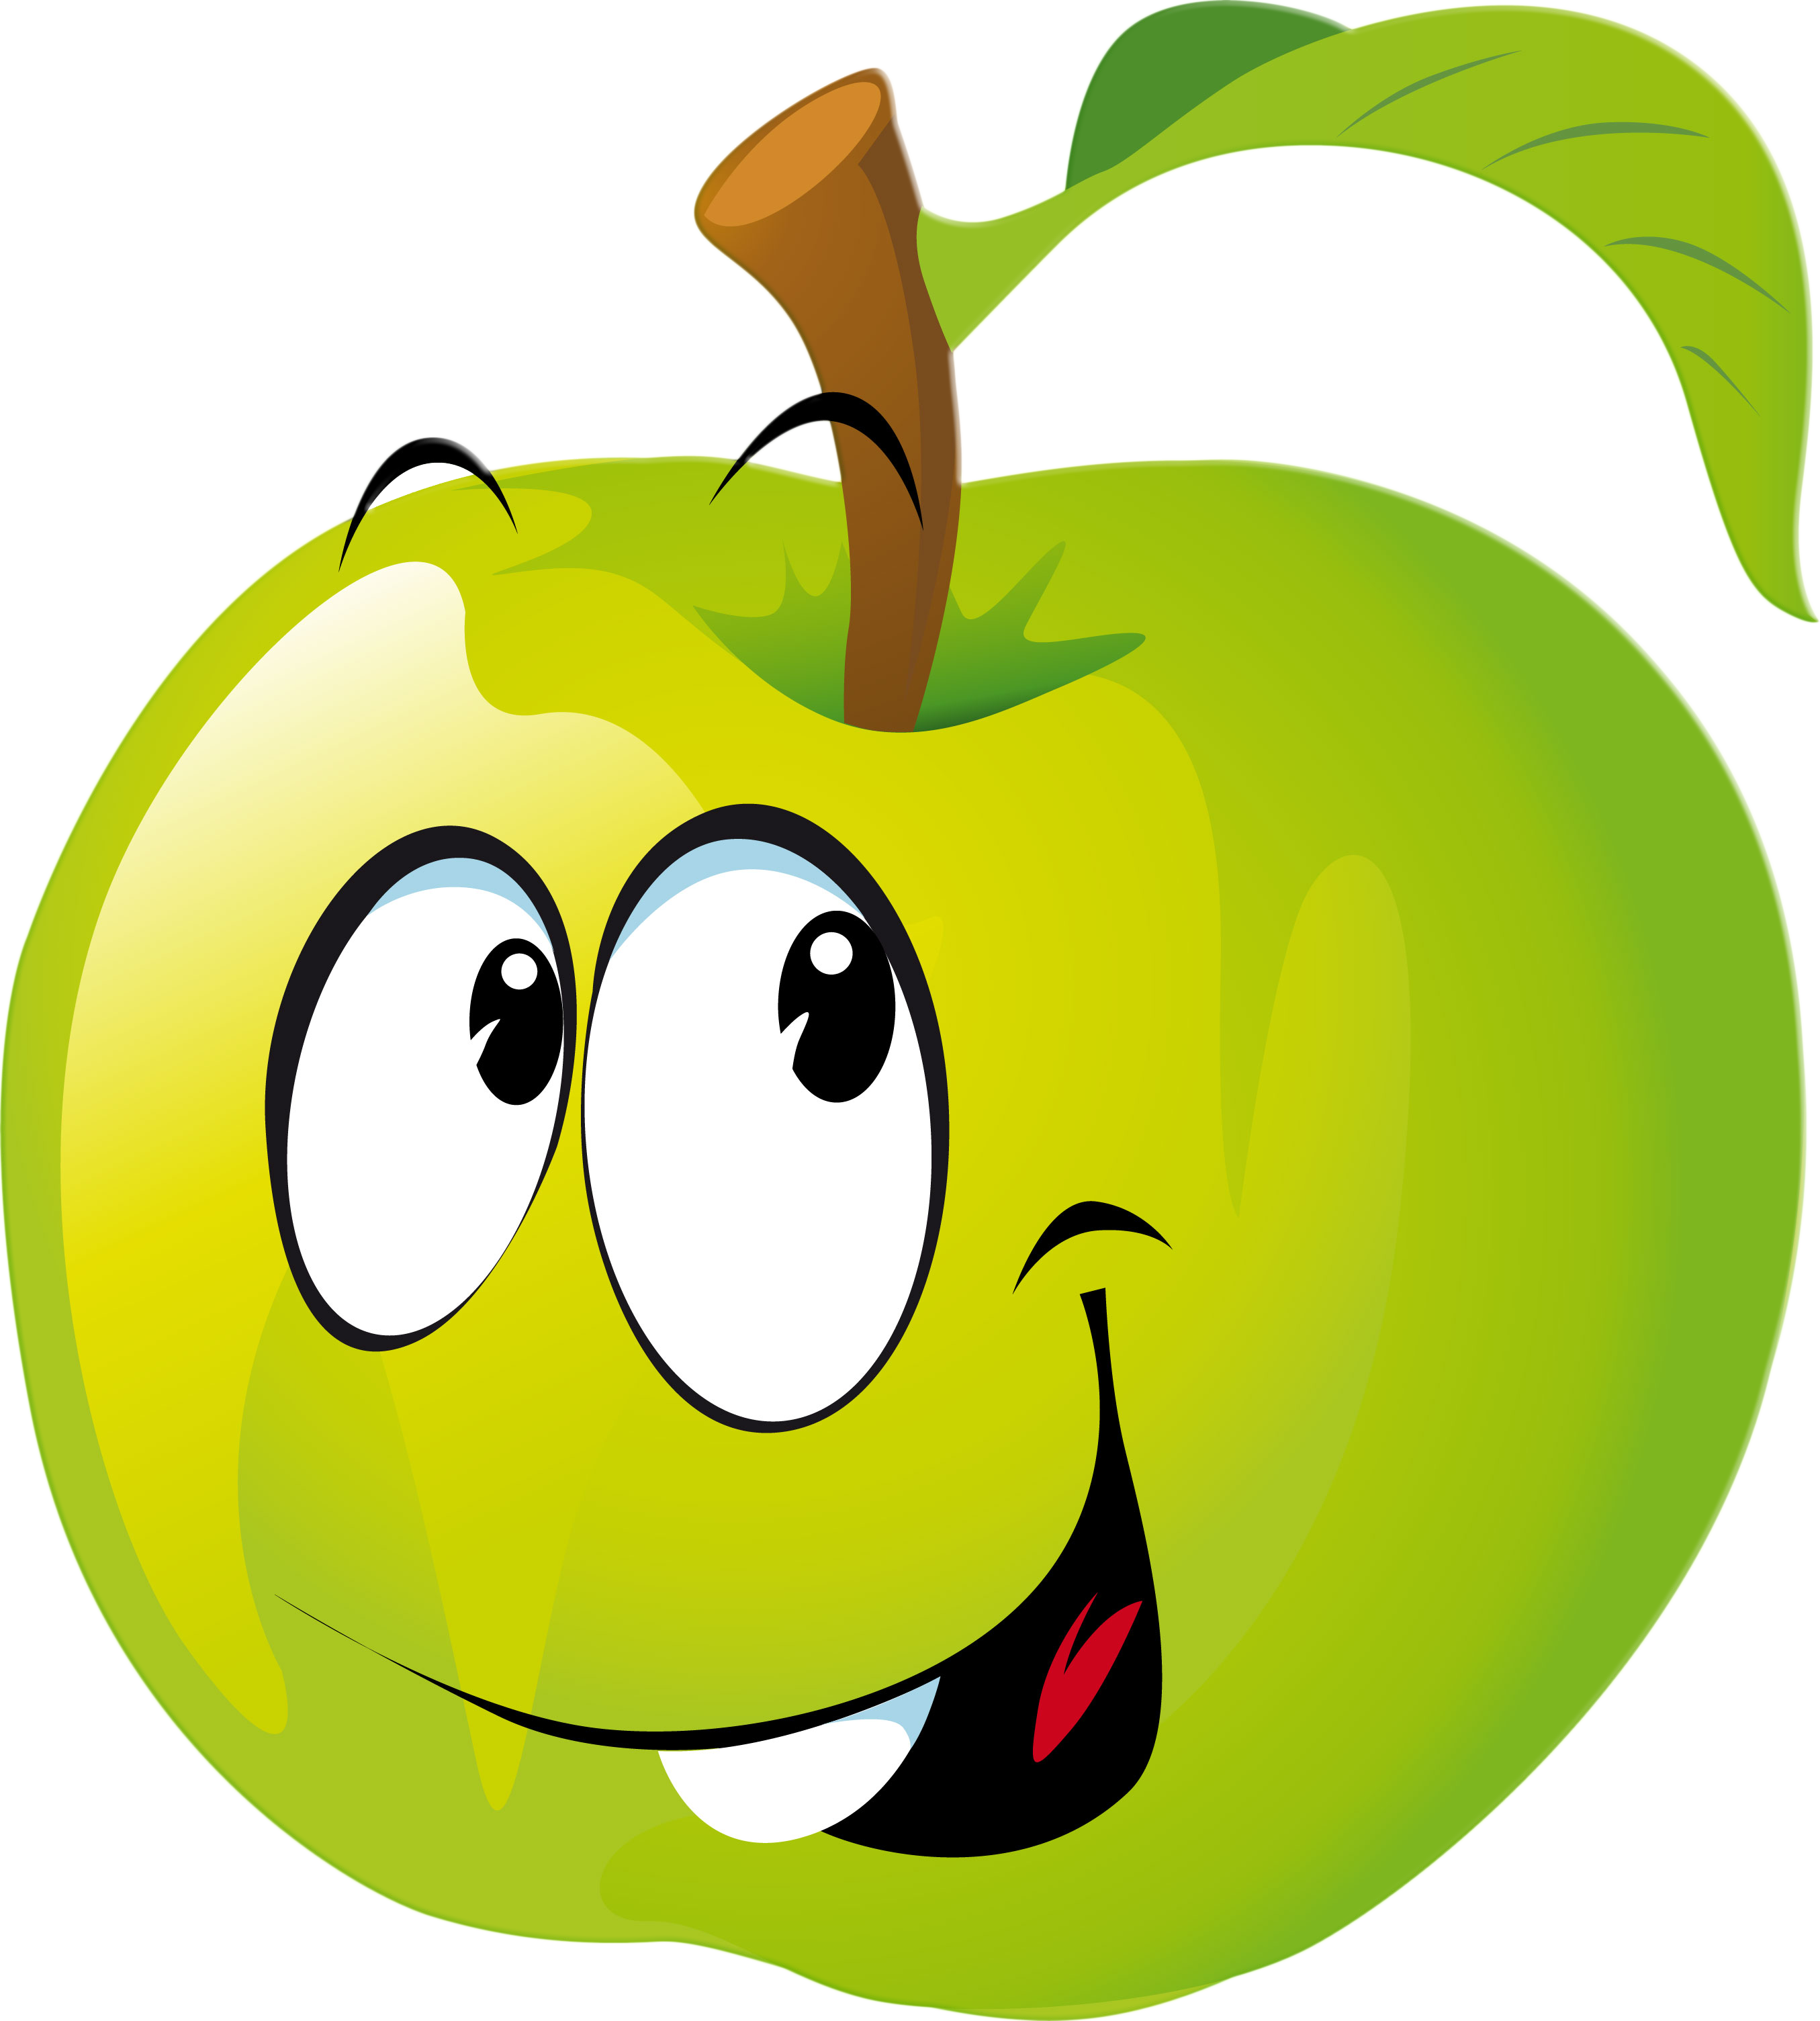 d af cd. Healthy clipart emoji